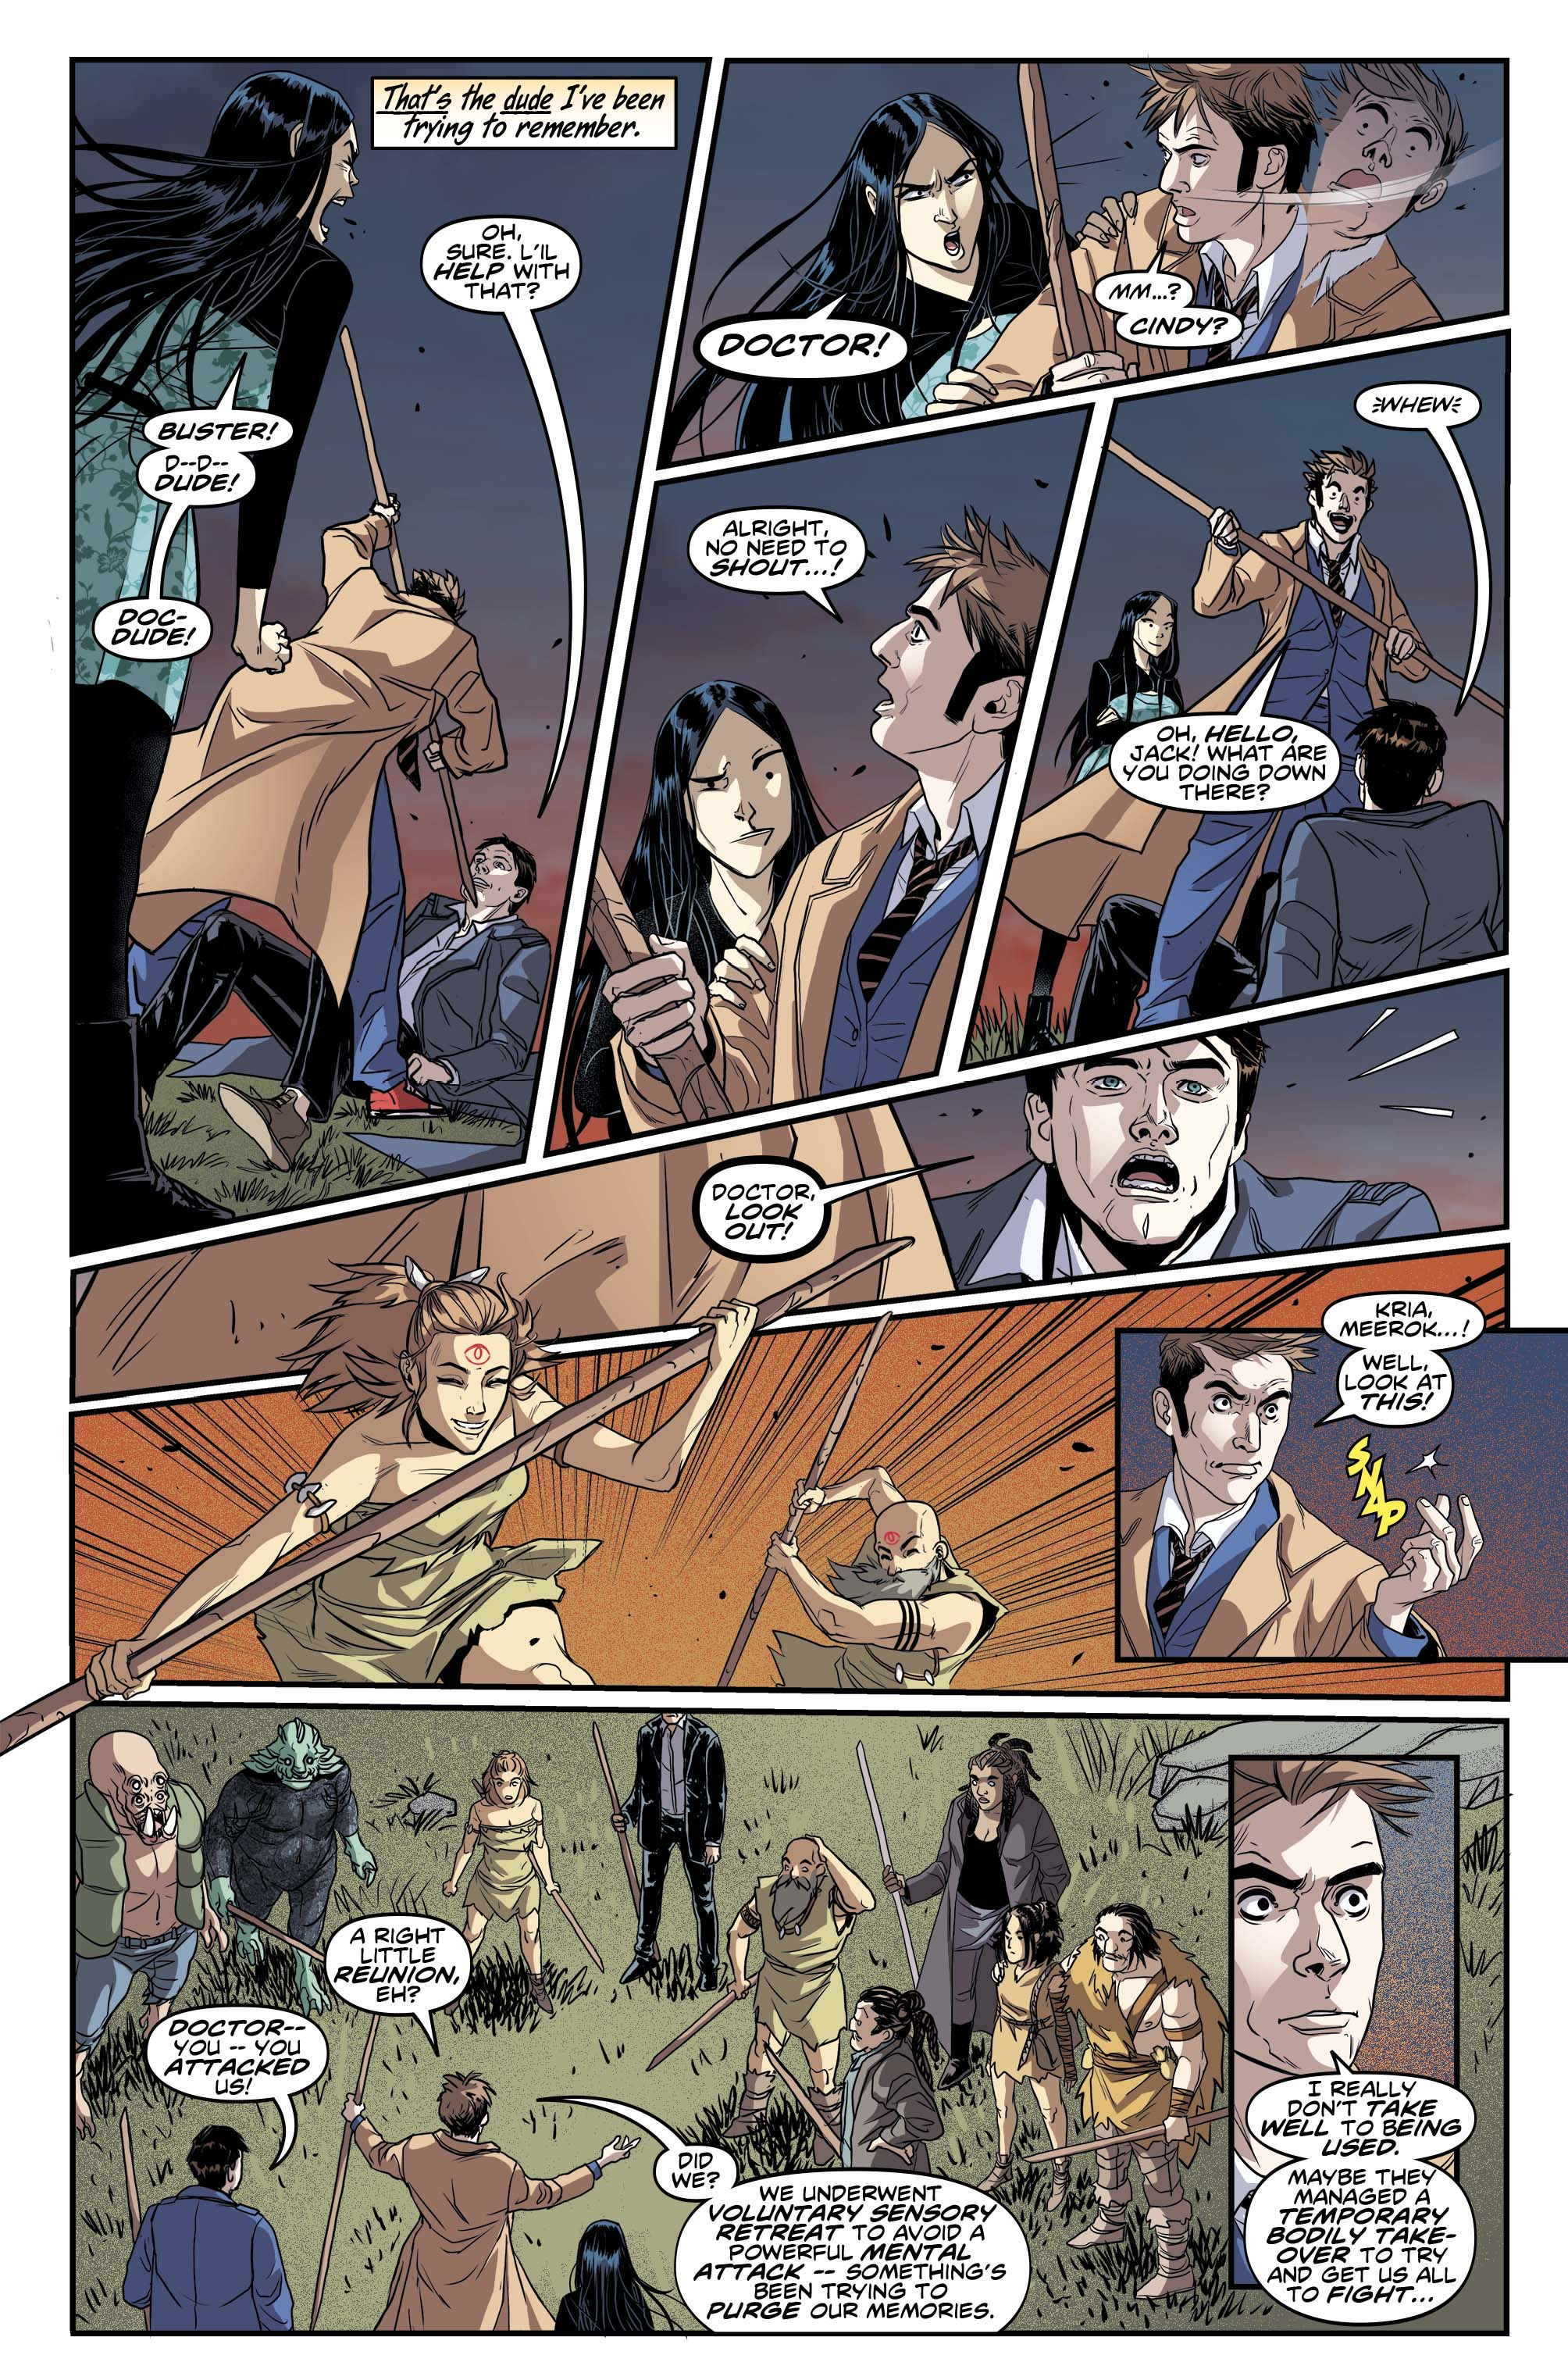 Doctor Who: The Tenth Doctor #2.6 Preview Page